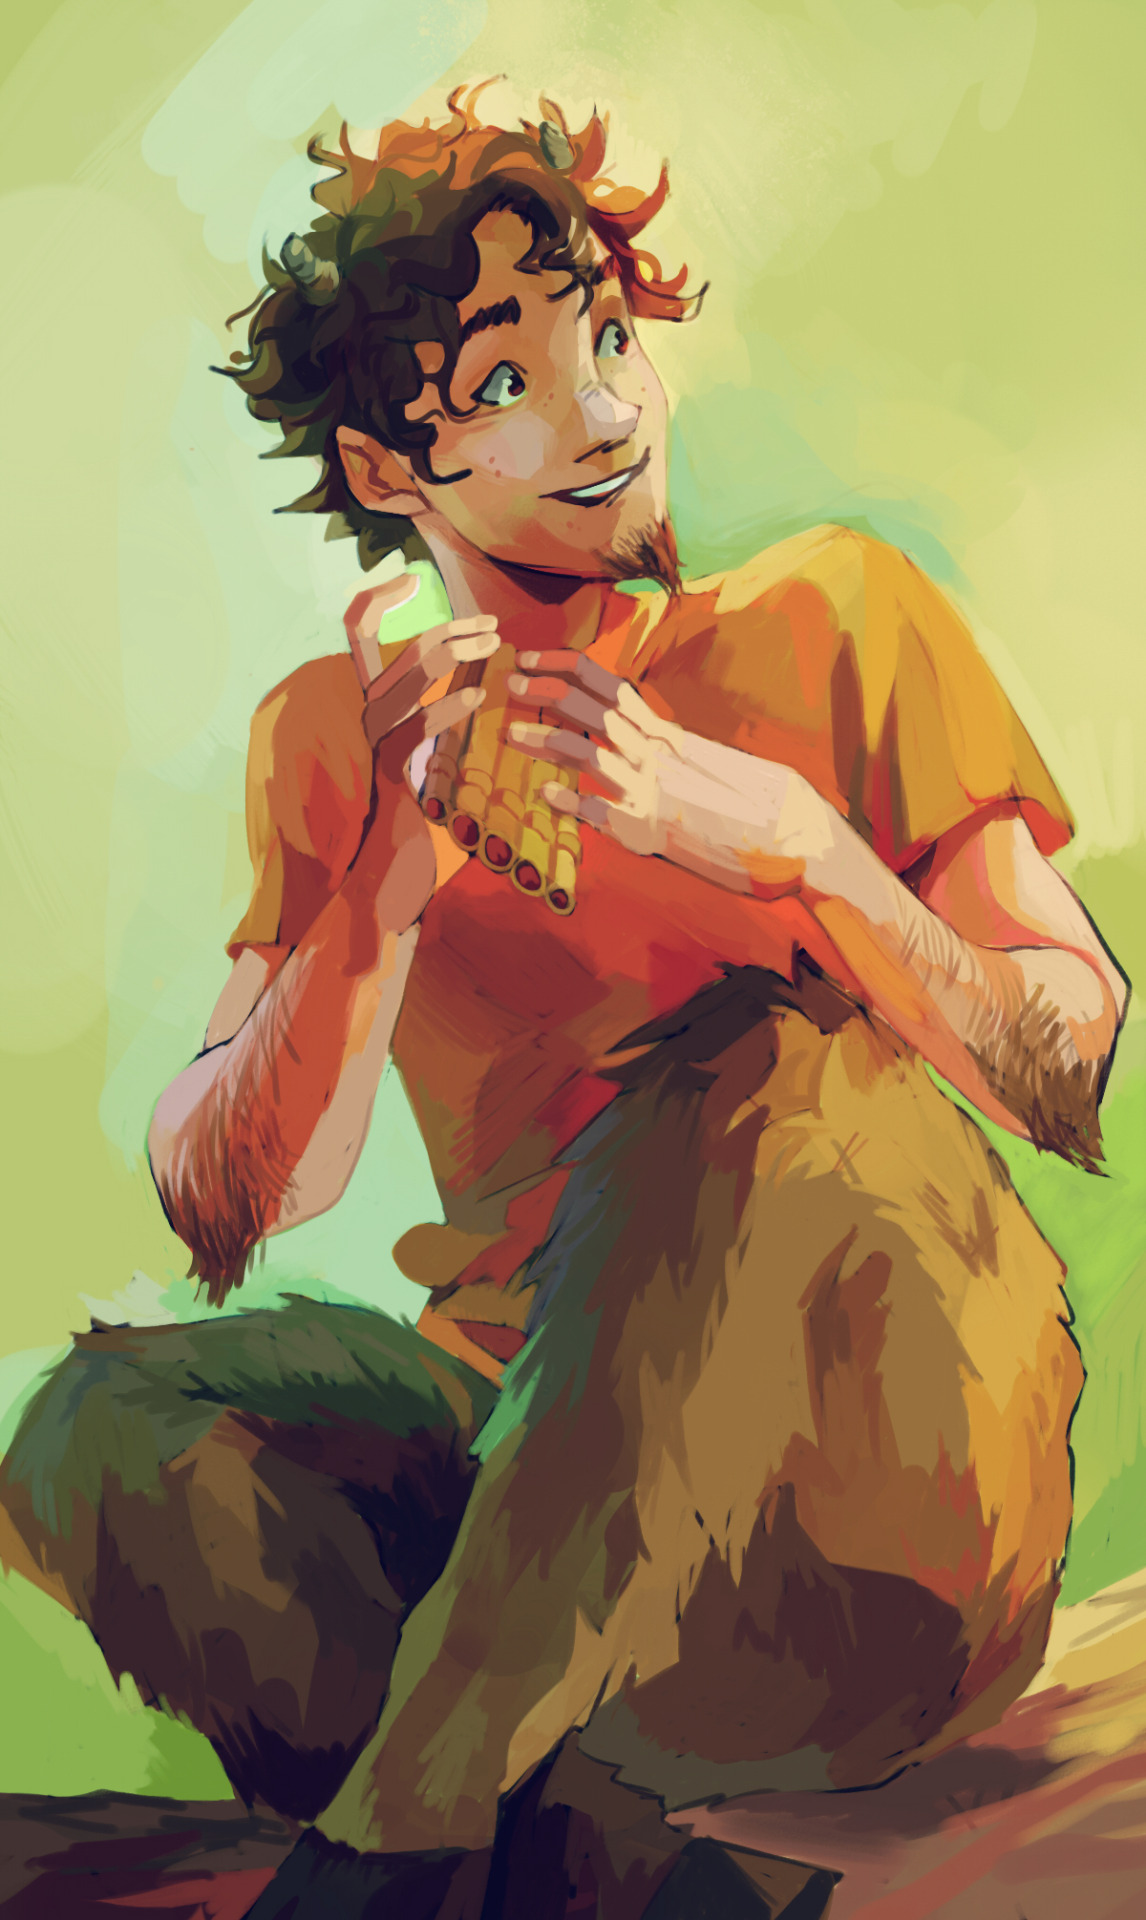 Official Grover Underwood Artwork By Viria Percy Jackson